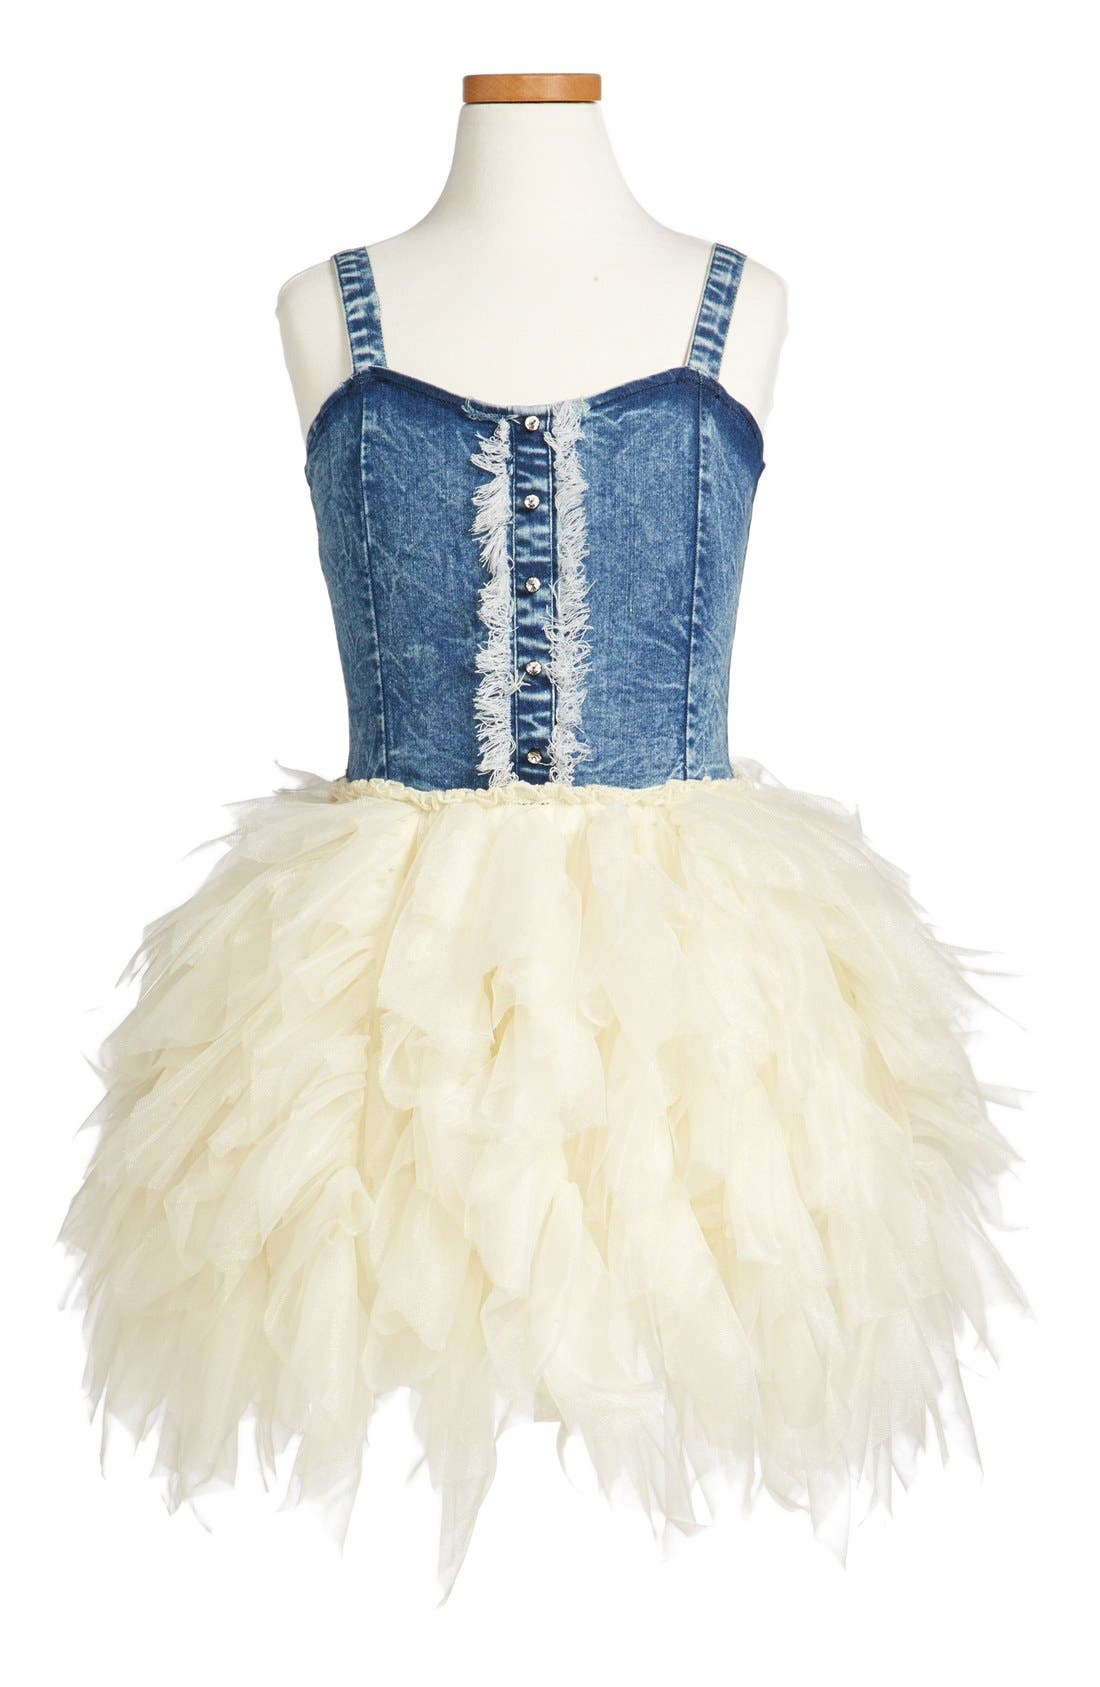 Main Image - Ooh! La, La! Couture Denim Tulle Dress (Big Girls)